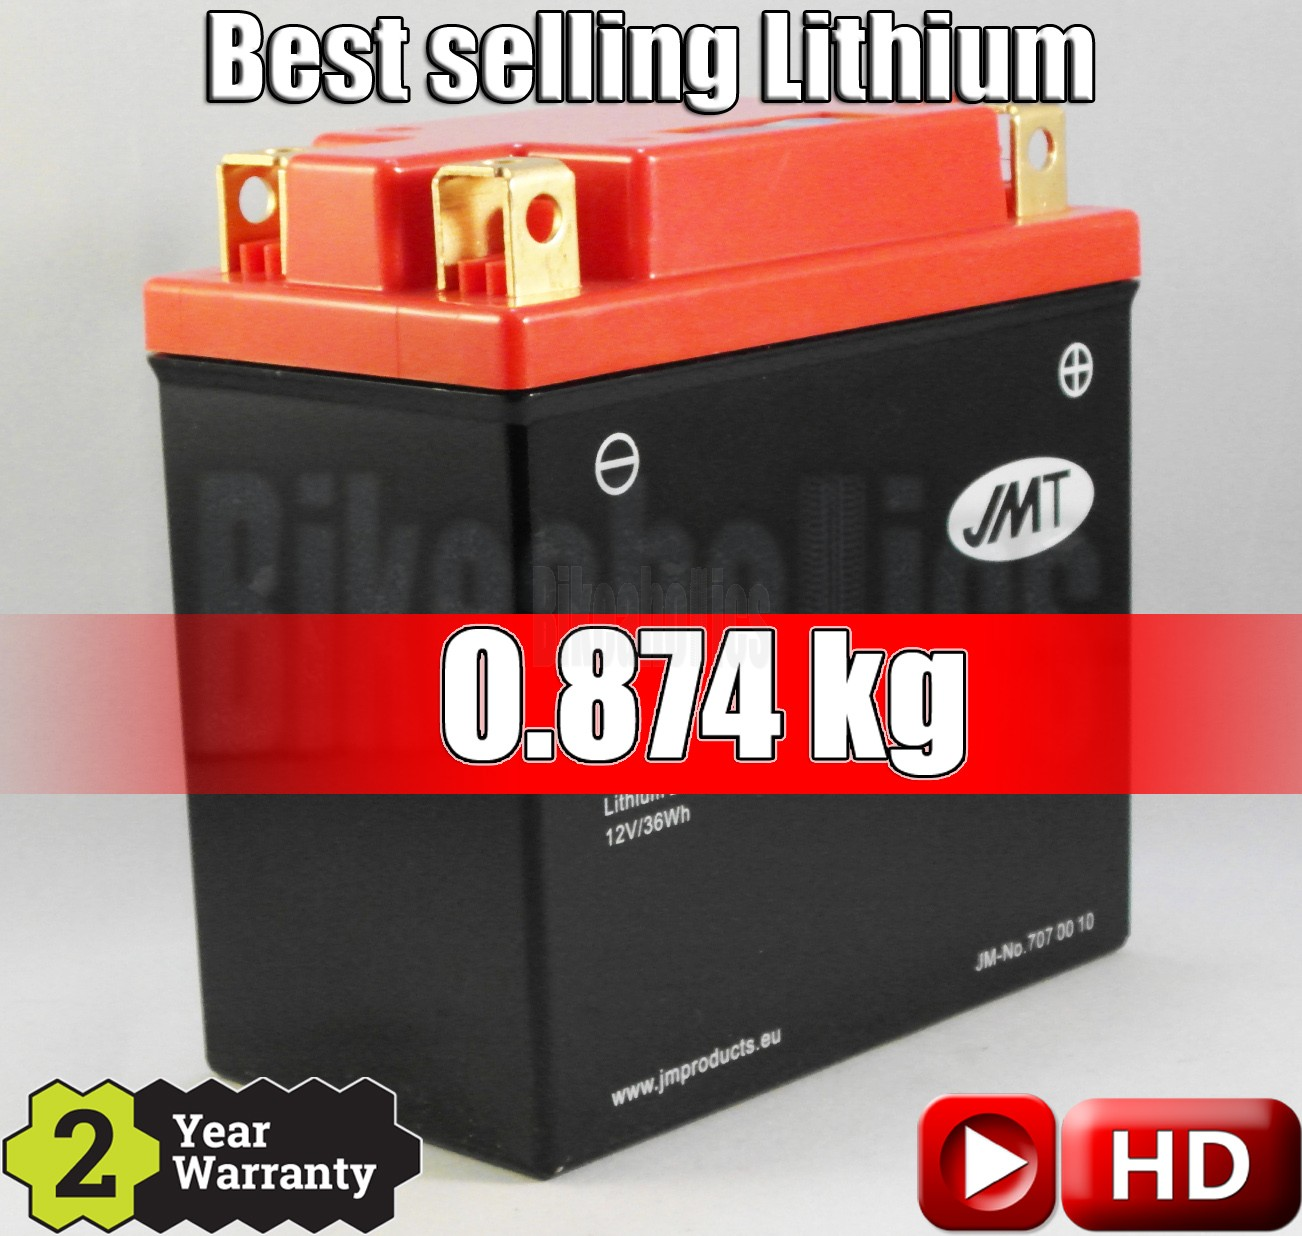 LITHIUM -Best Price- Motorcycle Battery YB9-FP JMT 12N7-4B 12N9-4B-1 HVT-9 YB7L